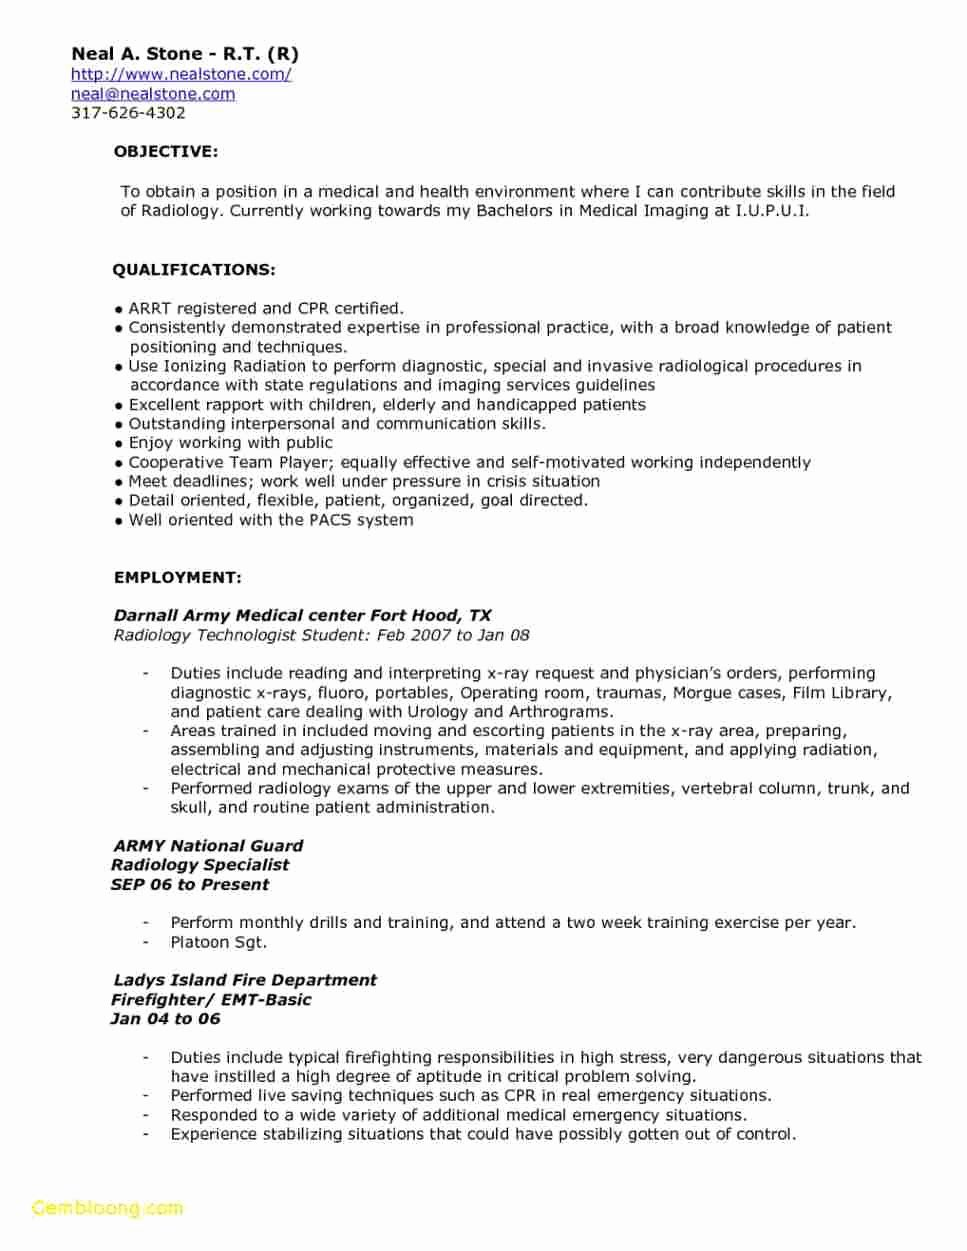 Radiologic Technologist Resume Entry Level